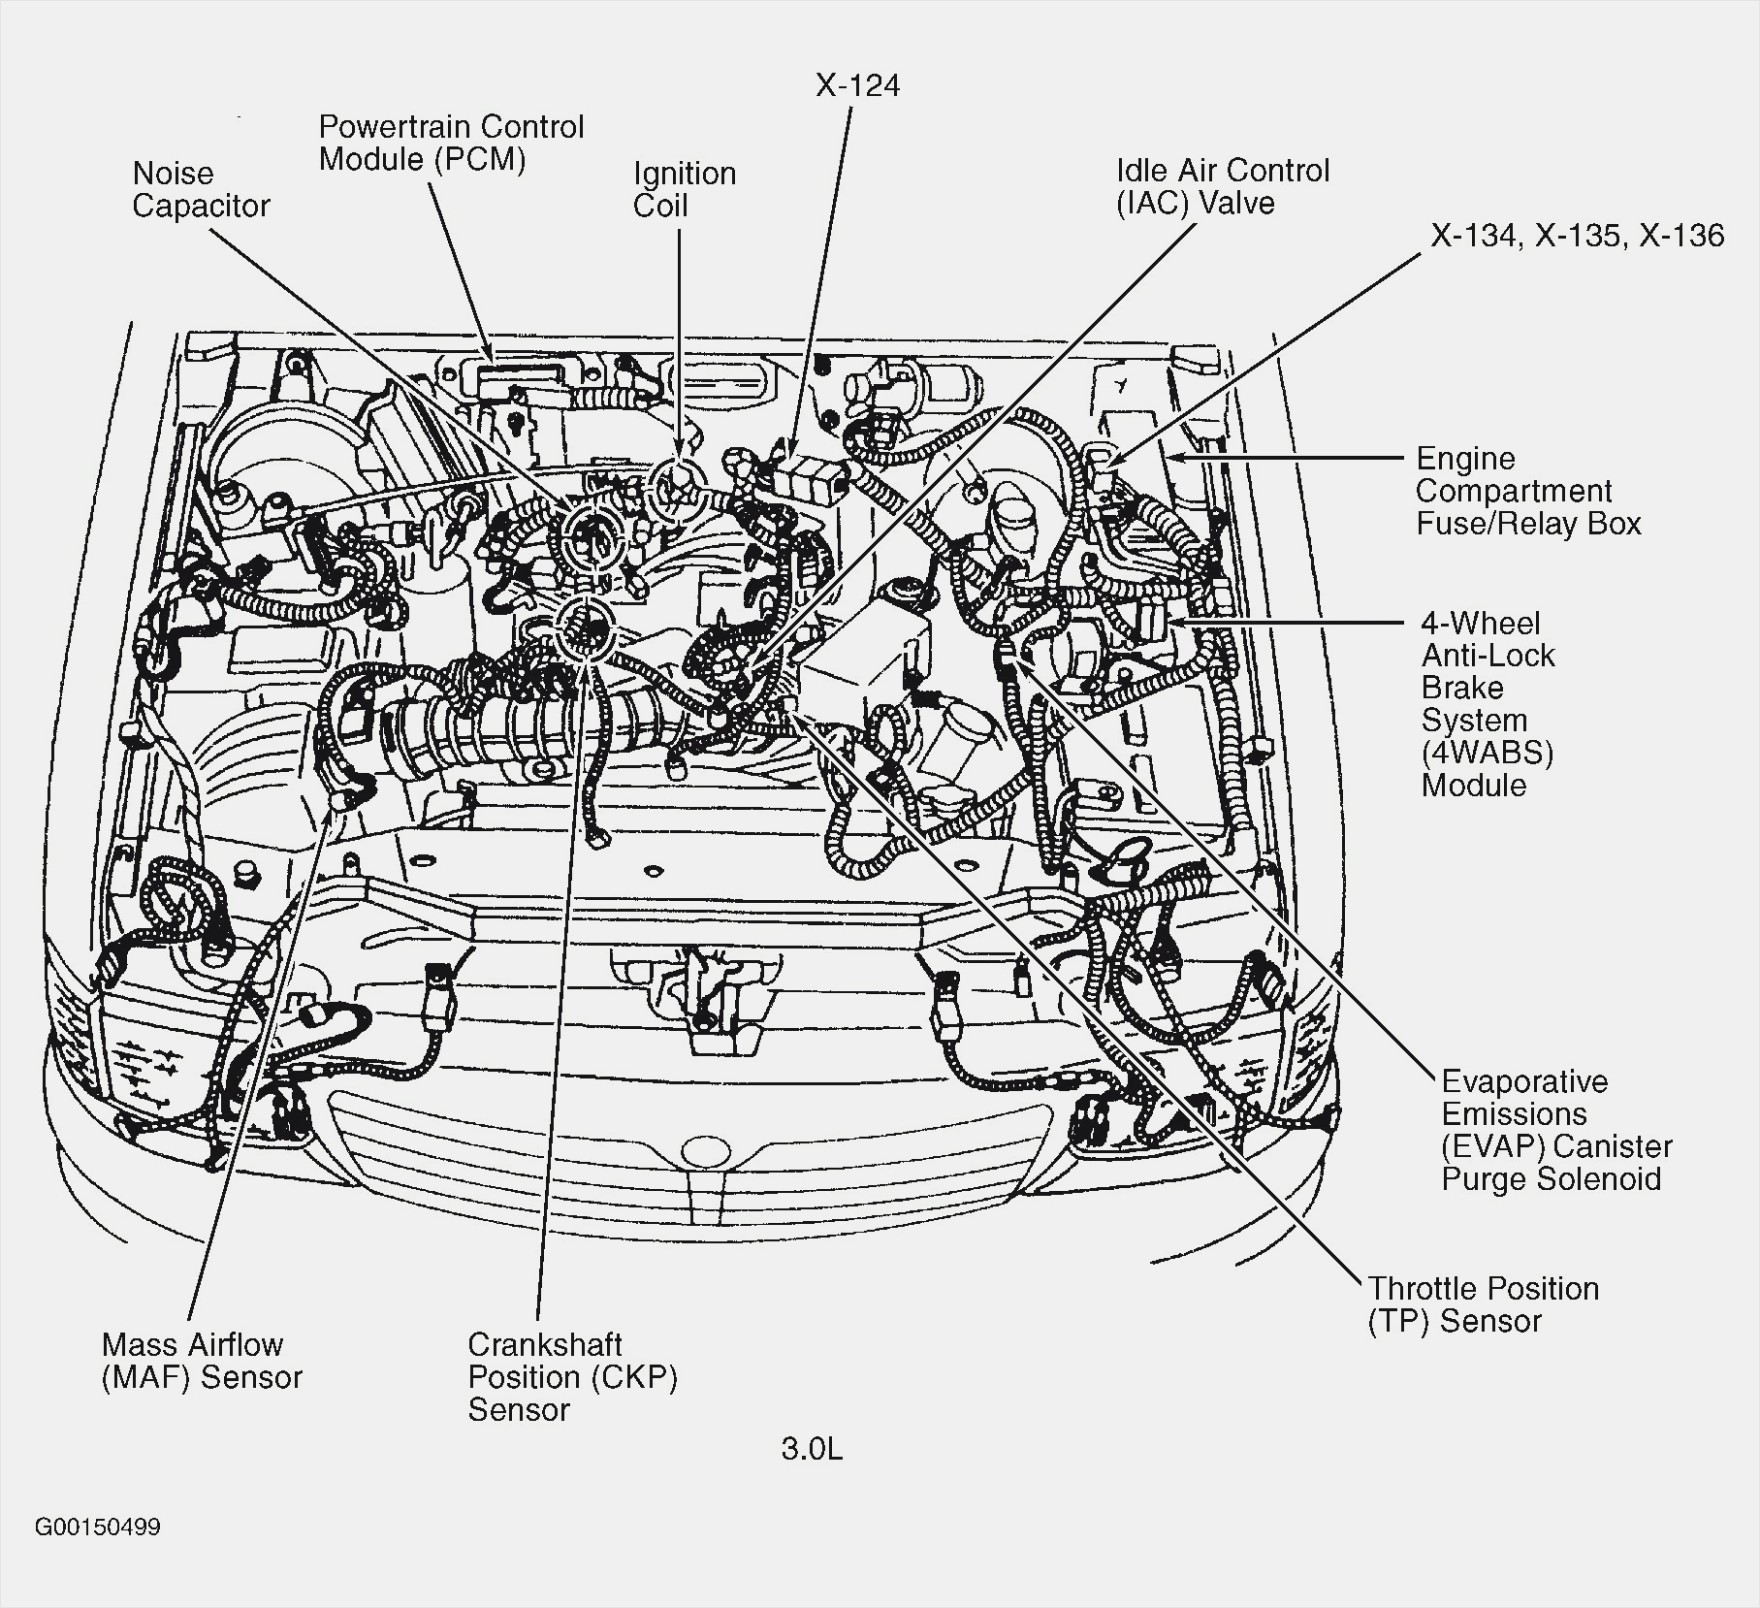 1991 Honda Accord Engine Diagram Mazda Millenia Ignition Wiring Diagram Opinions About Wiring Diagram • Of 1991 Honda Accord Engine Diagram